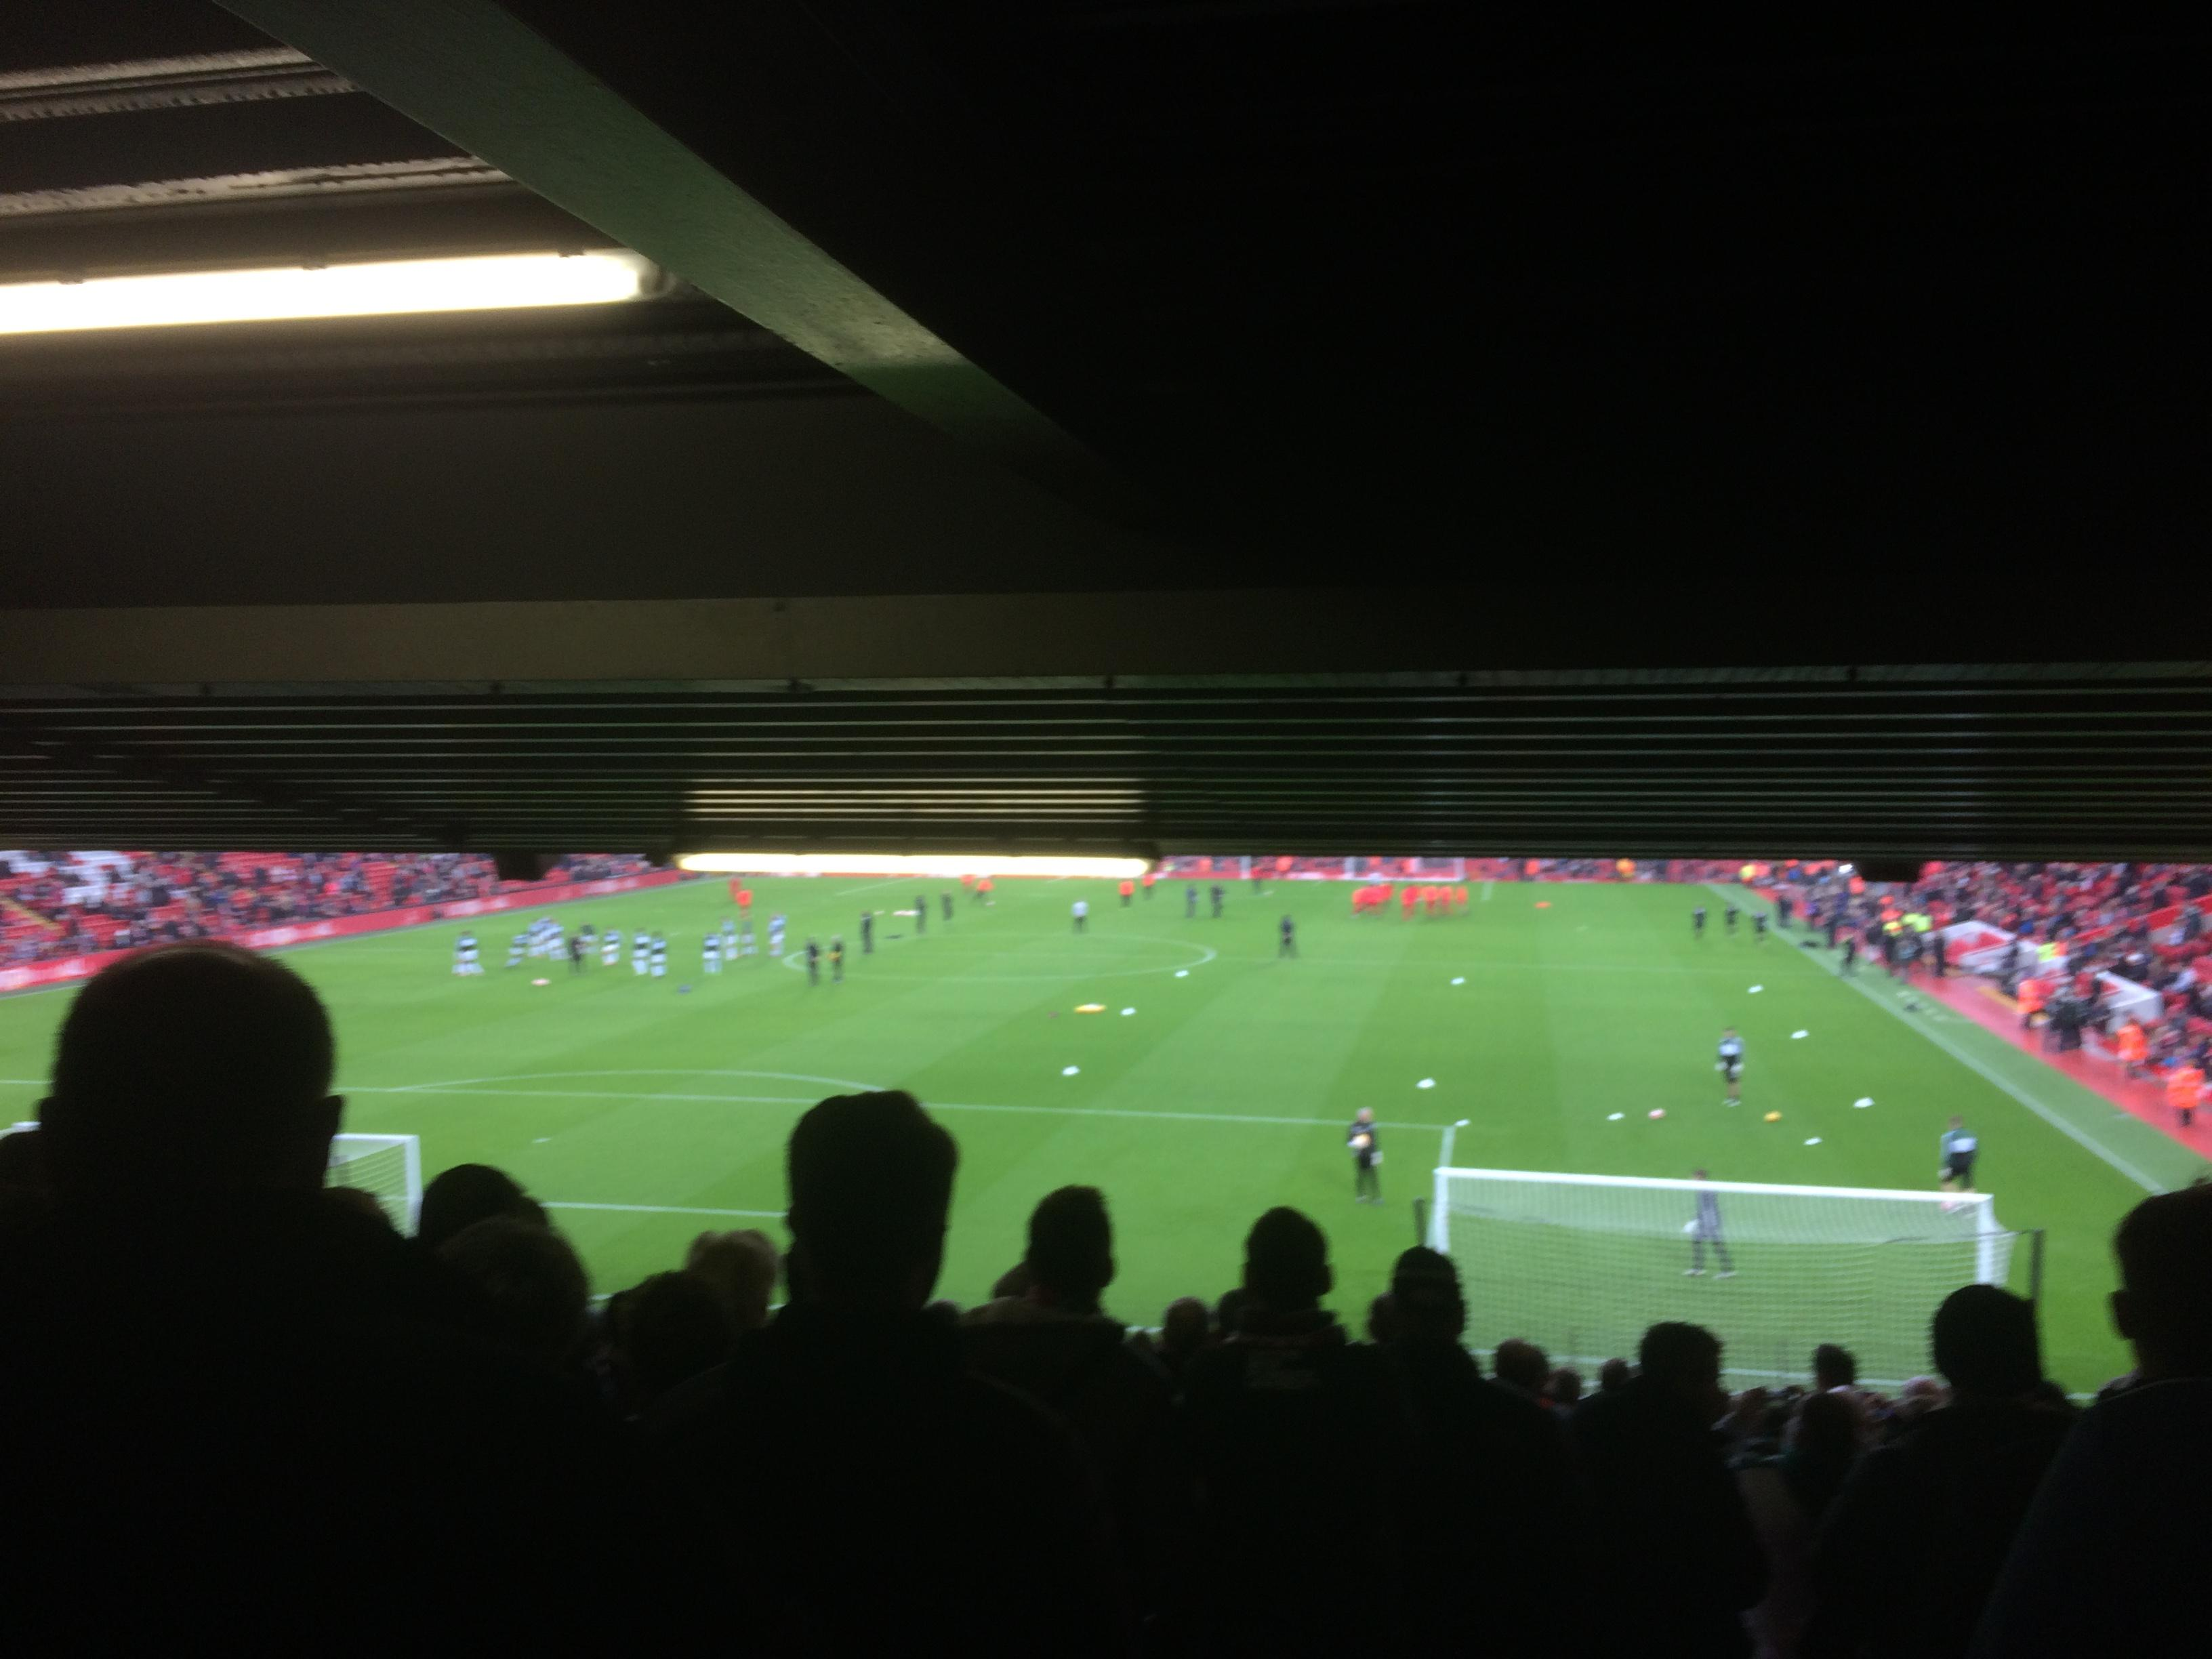 Anfield Section Anfield Road Lower Tier Block  Row 34 Seat 159